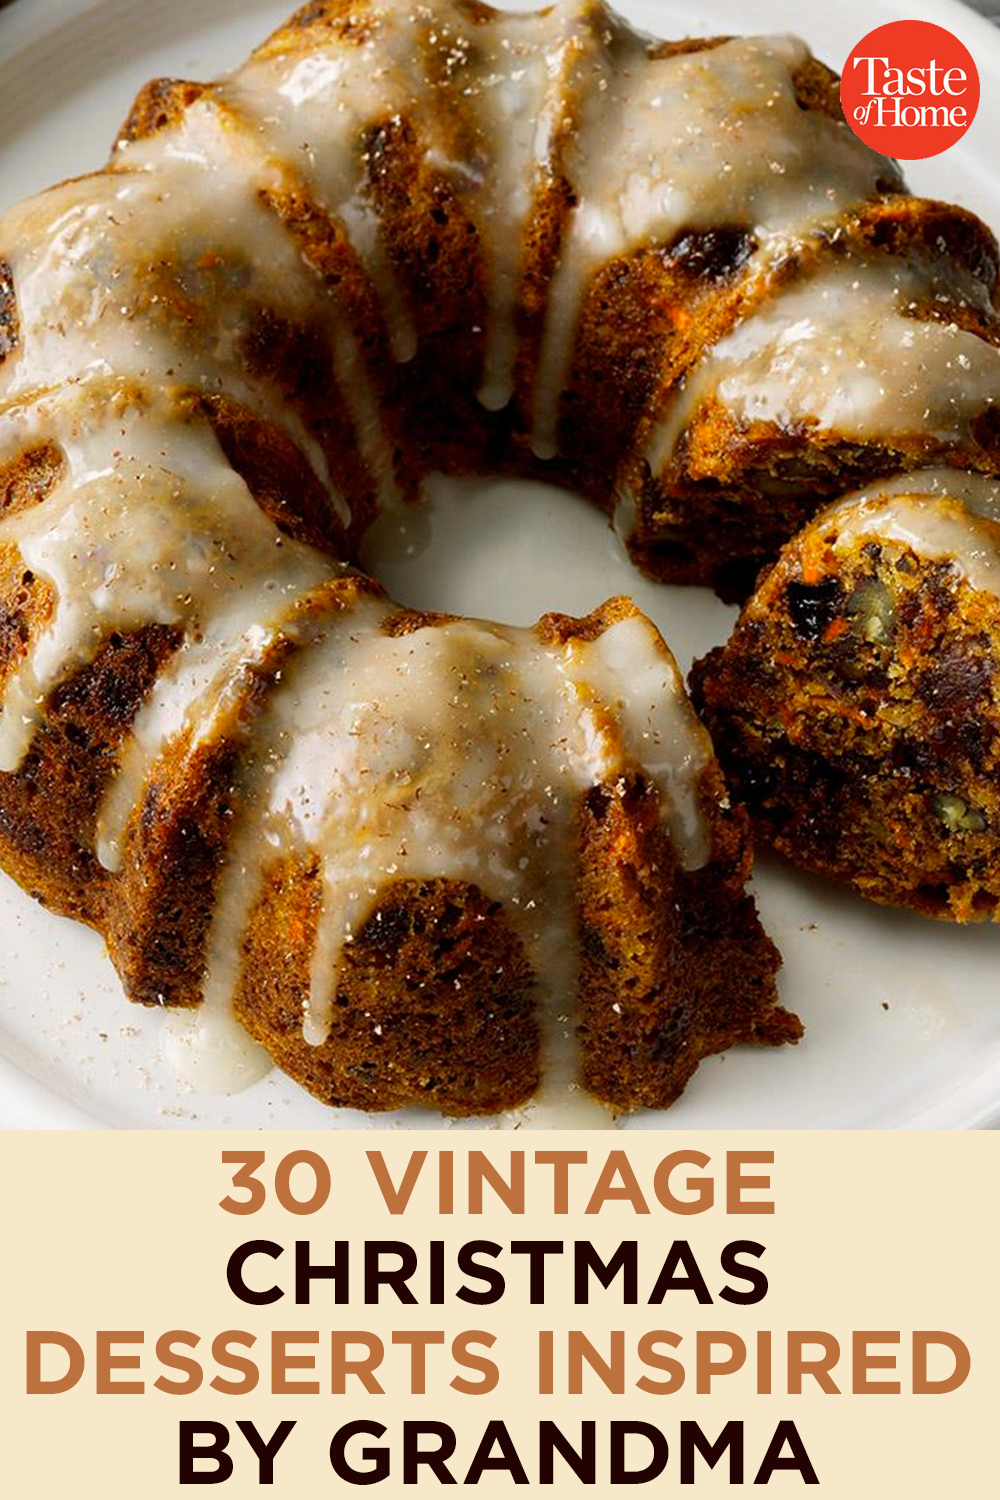 30 Vintage Christmas Desserts Inspired by Grandma